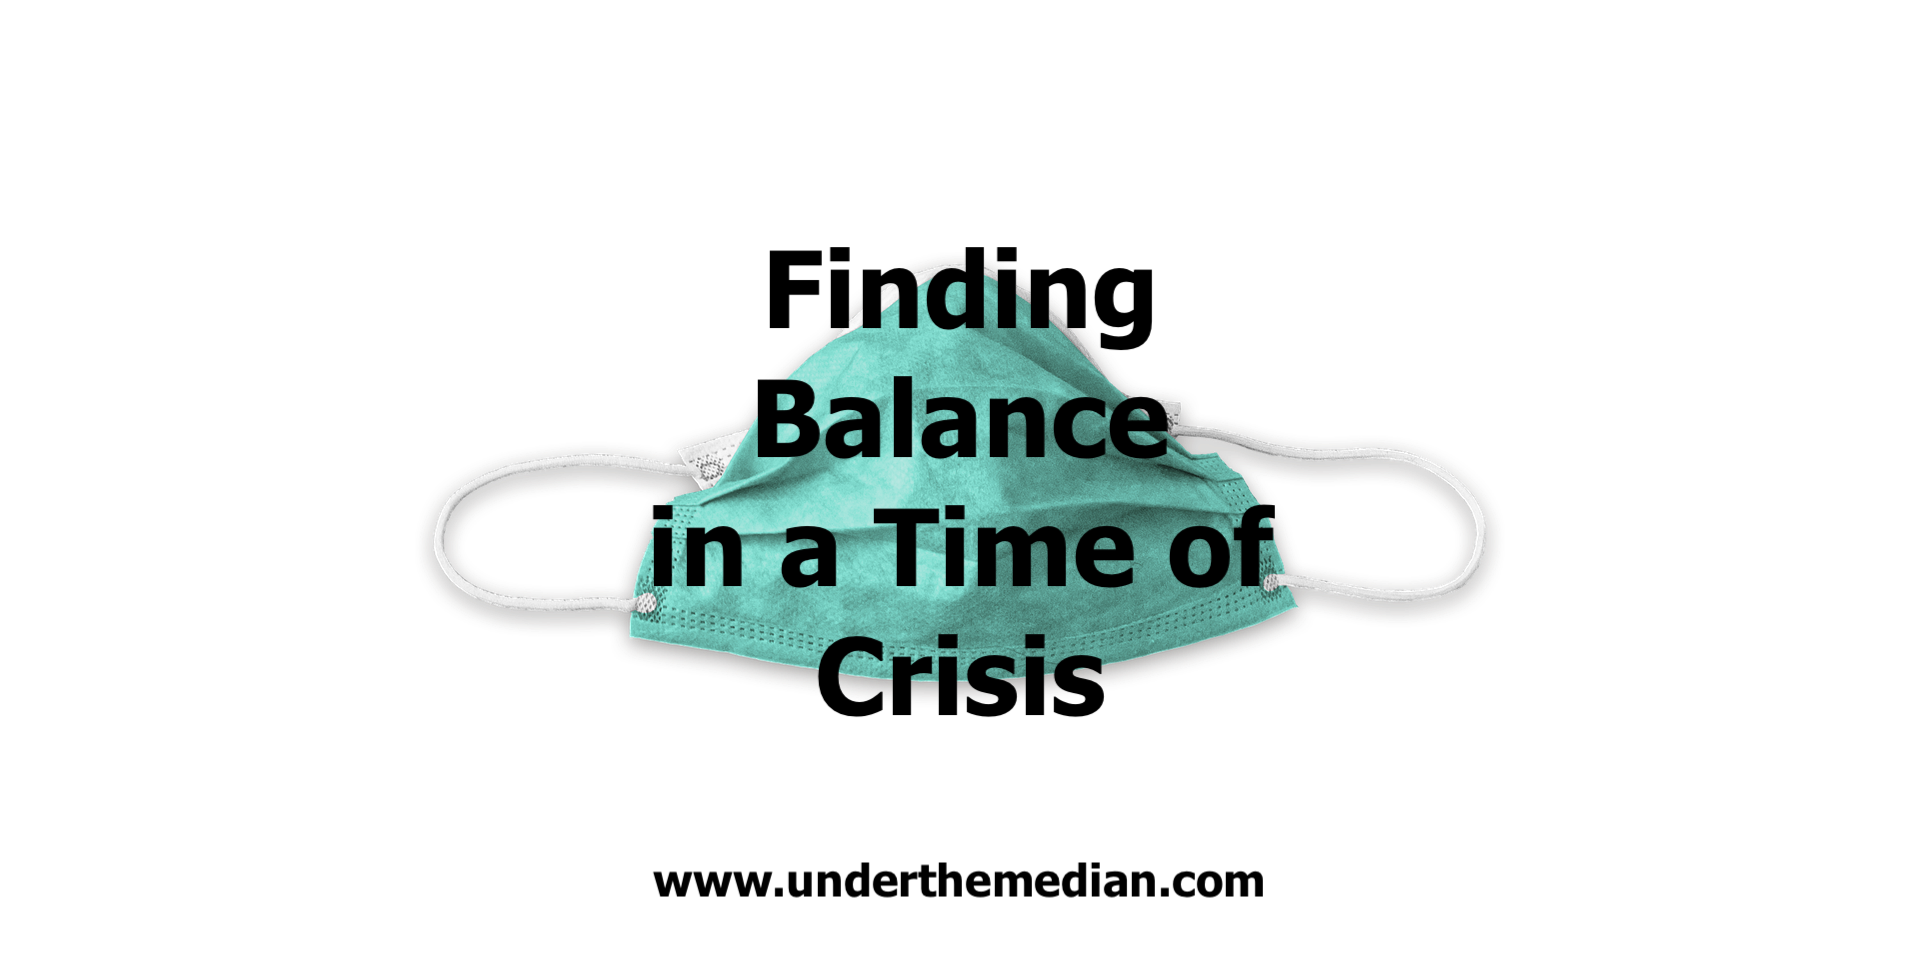 Finding Balance in a Time of Crisis